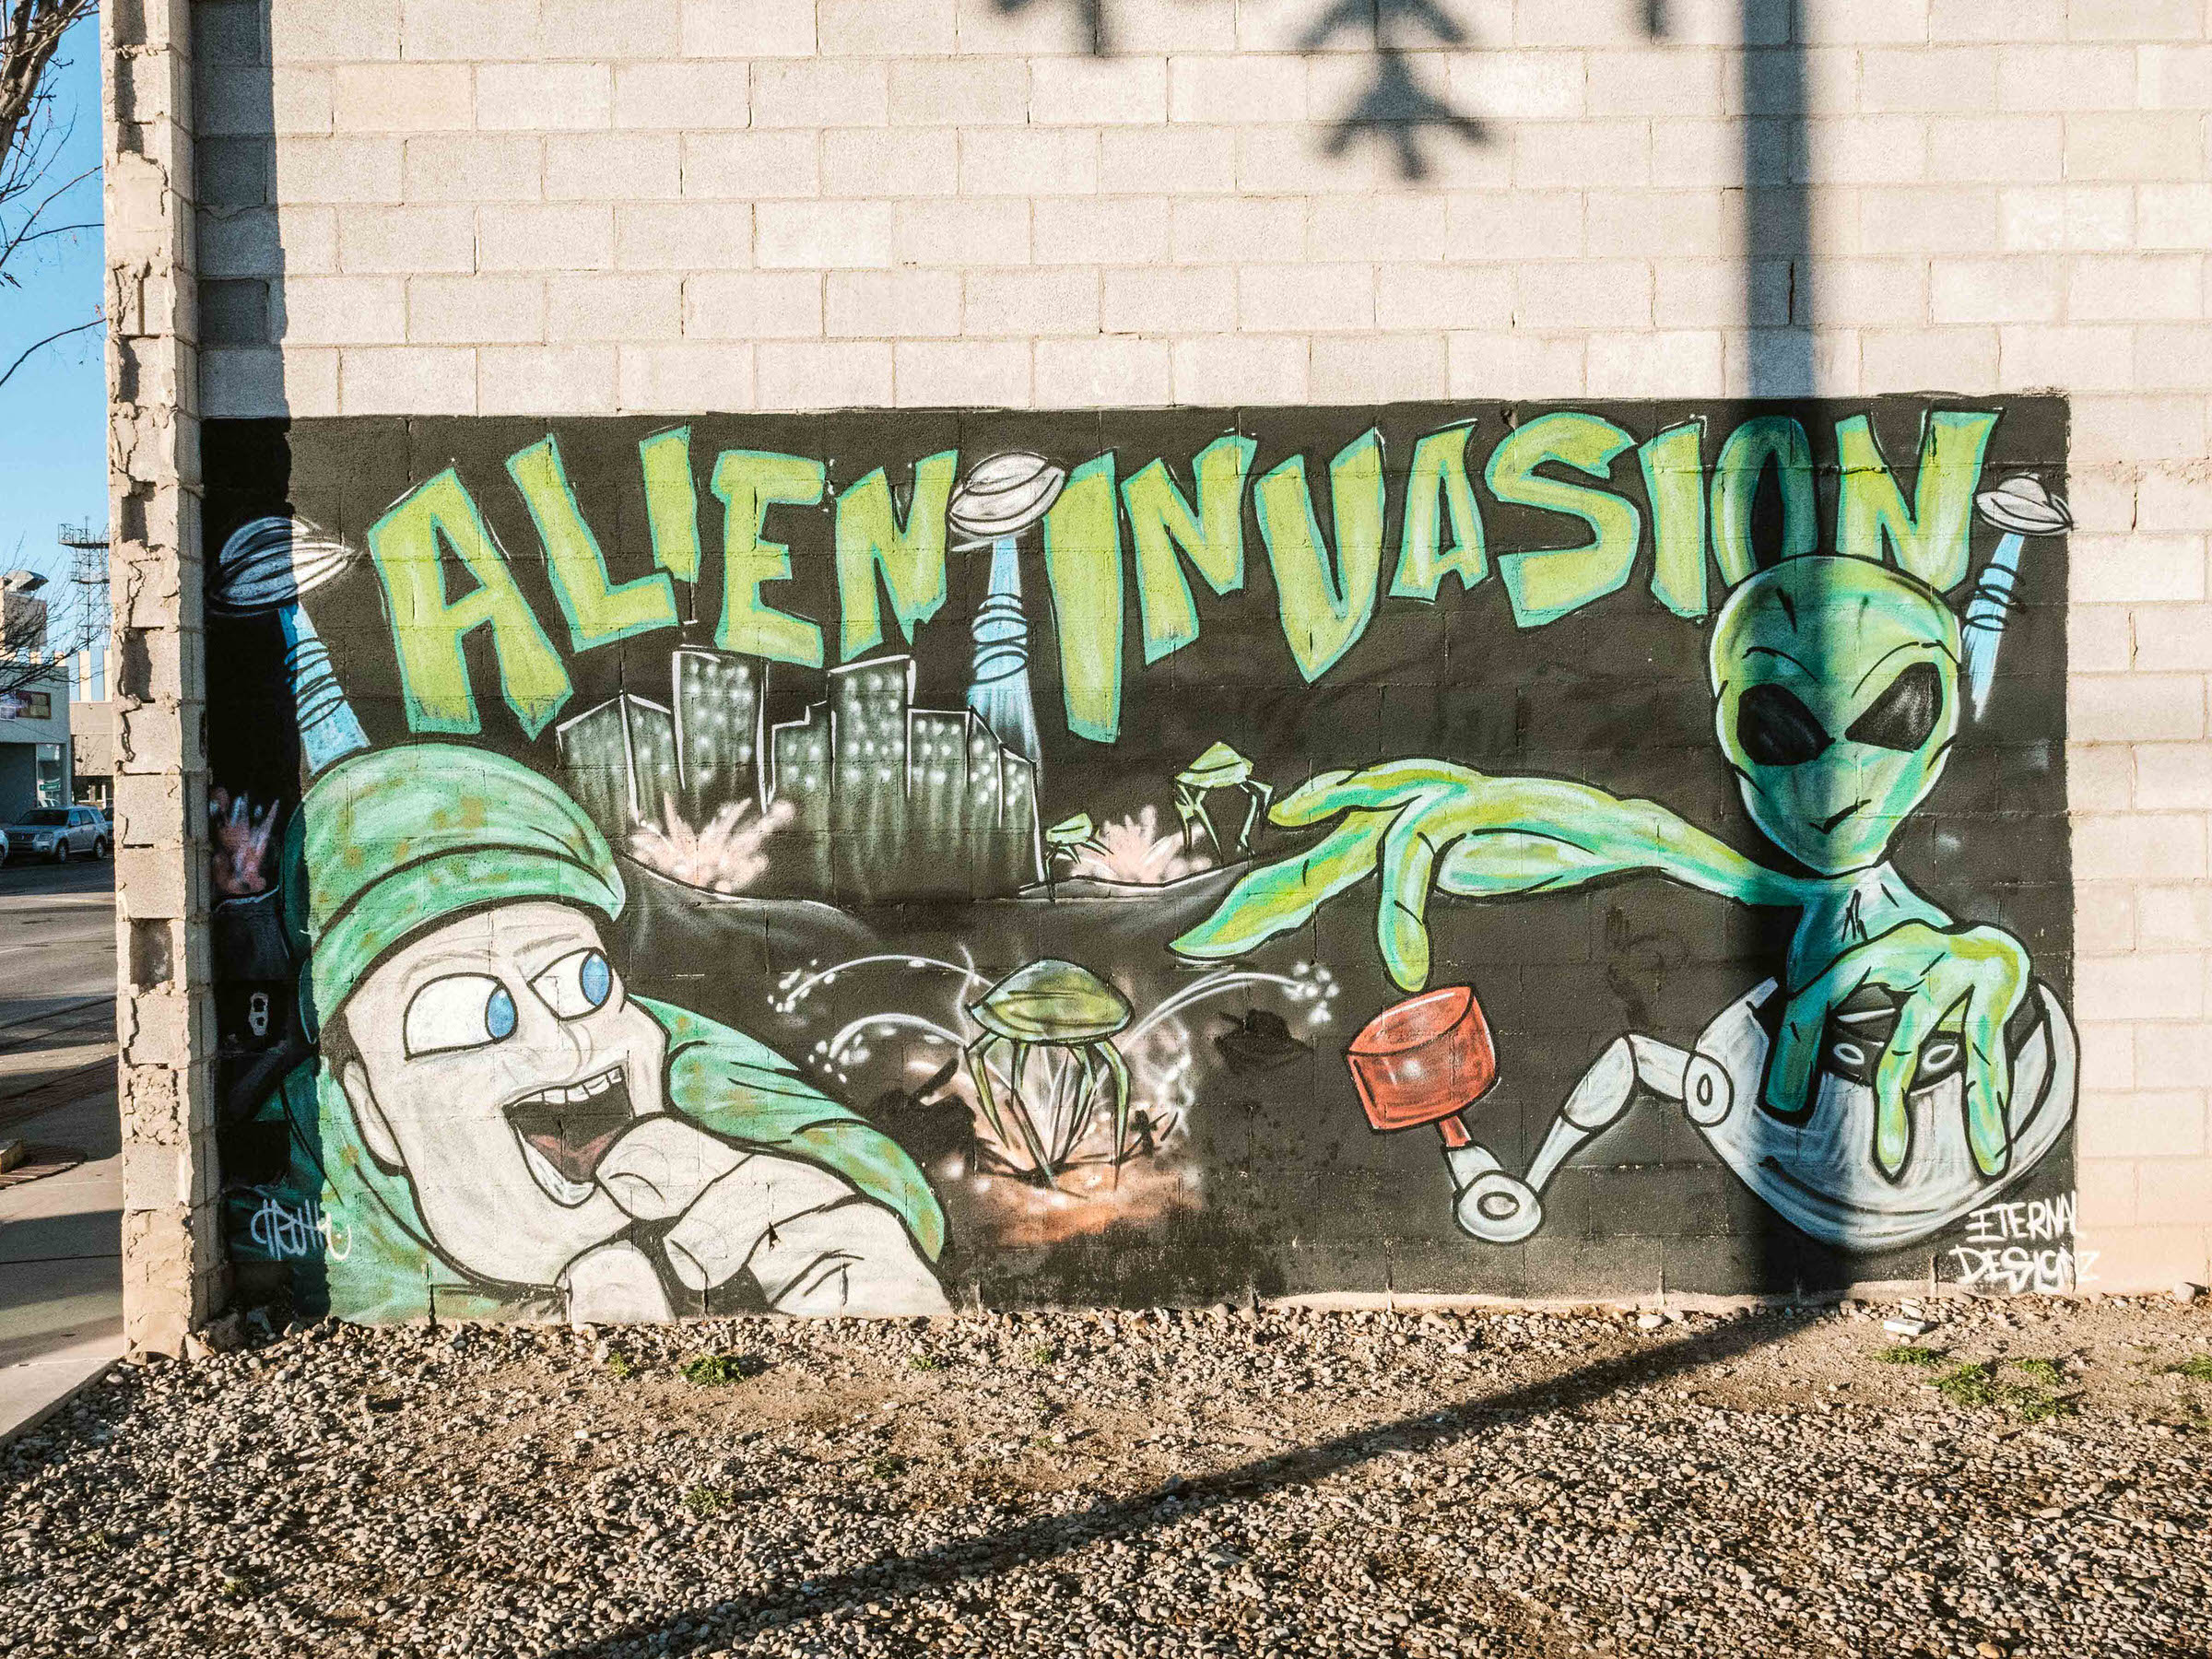 Check out the many things to do in Roswell . NM in order to learn about the alleged UFO crash of 1947 that stunned the country. Home to the alien museum plus a lot of people who really care about space, Roswell is a perfect town to visit for a day trip in the Southwest. #roswellnewmexico #aliens #traveldestinations #roswellnewmexicothingstodoin #newmexicotravel